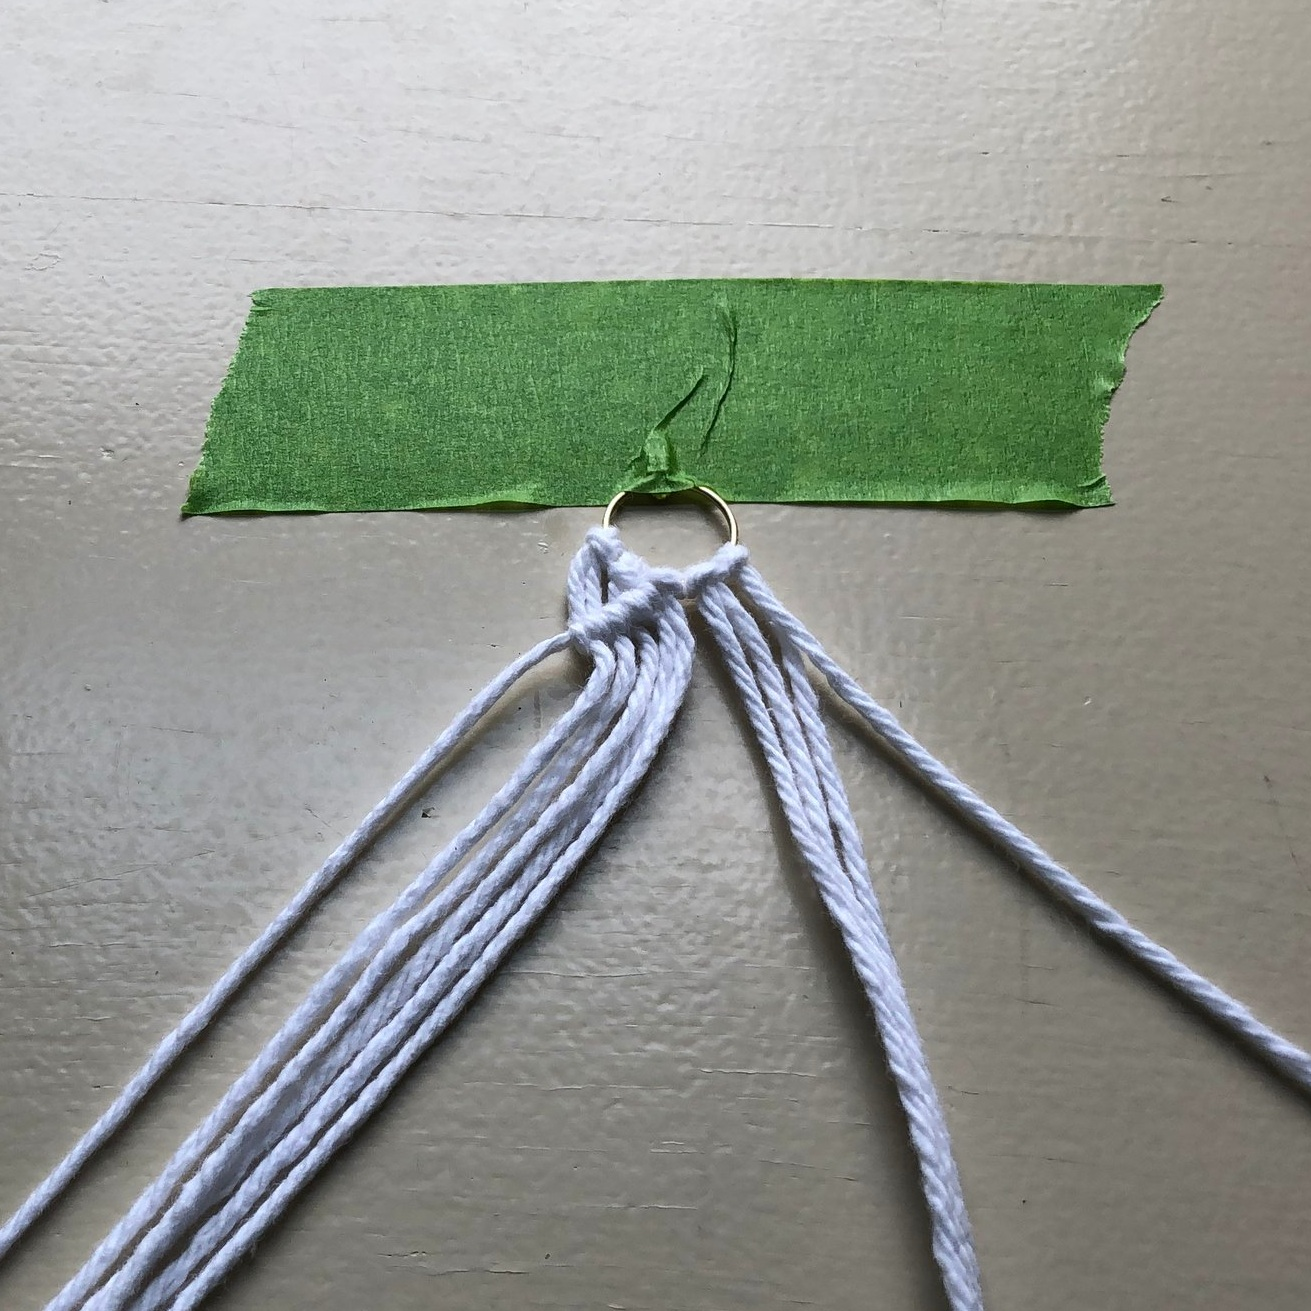 completed left diagonal of the double half hitch knots